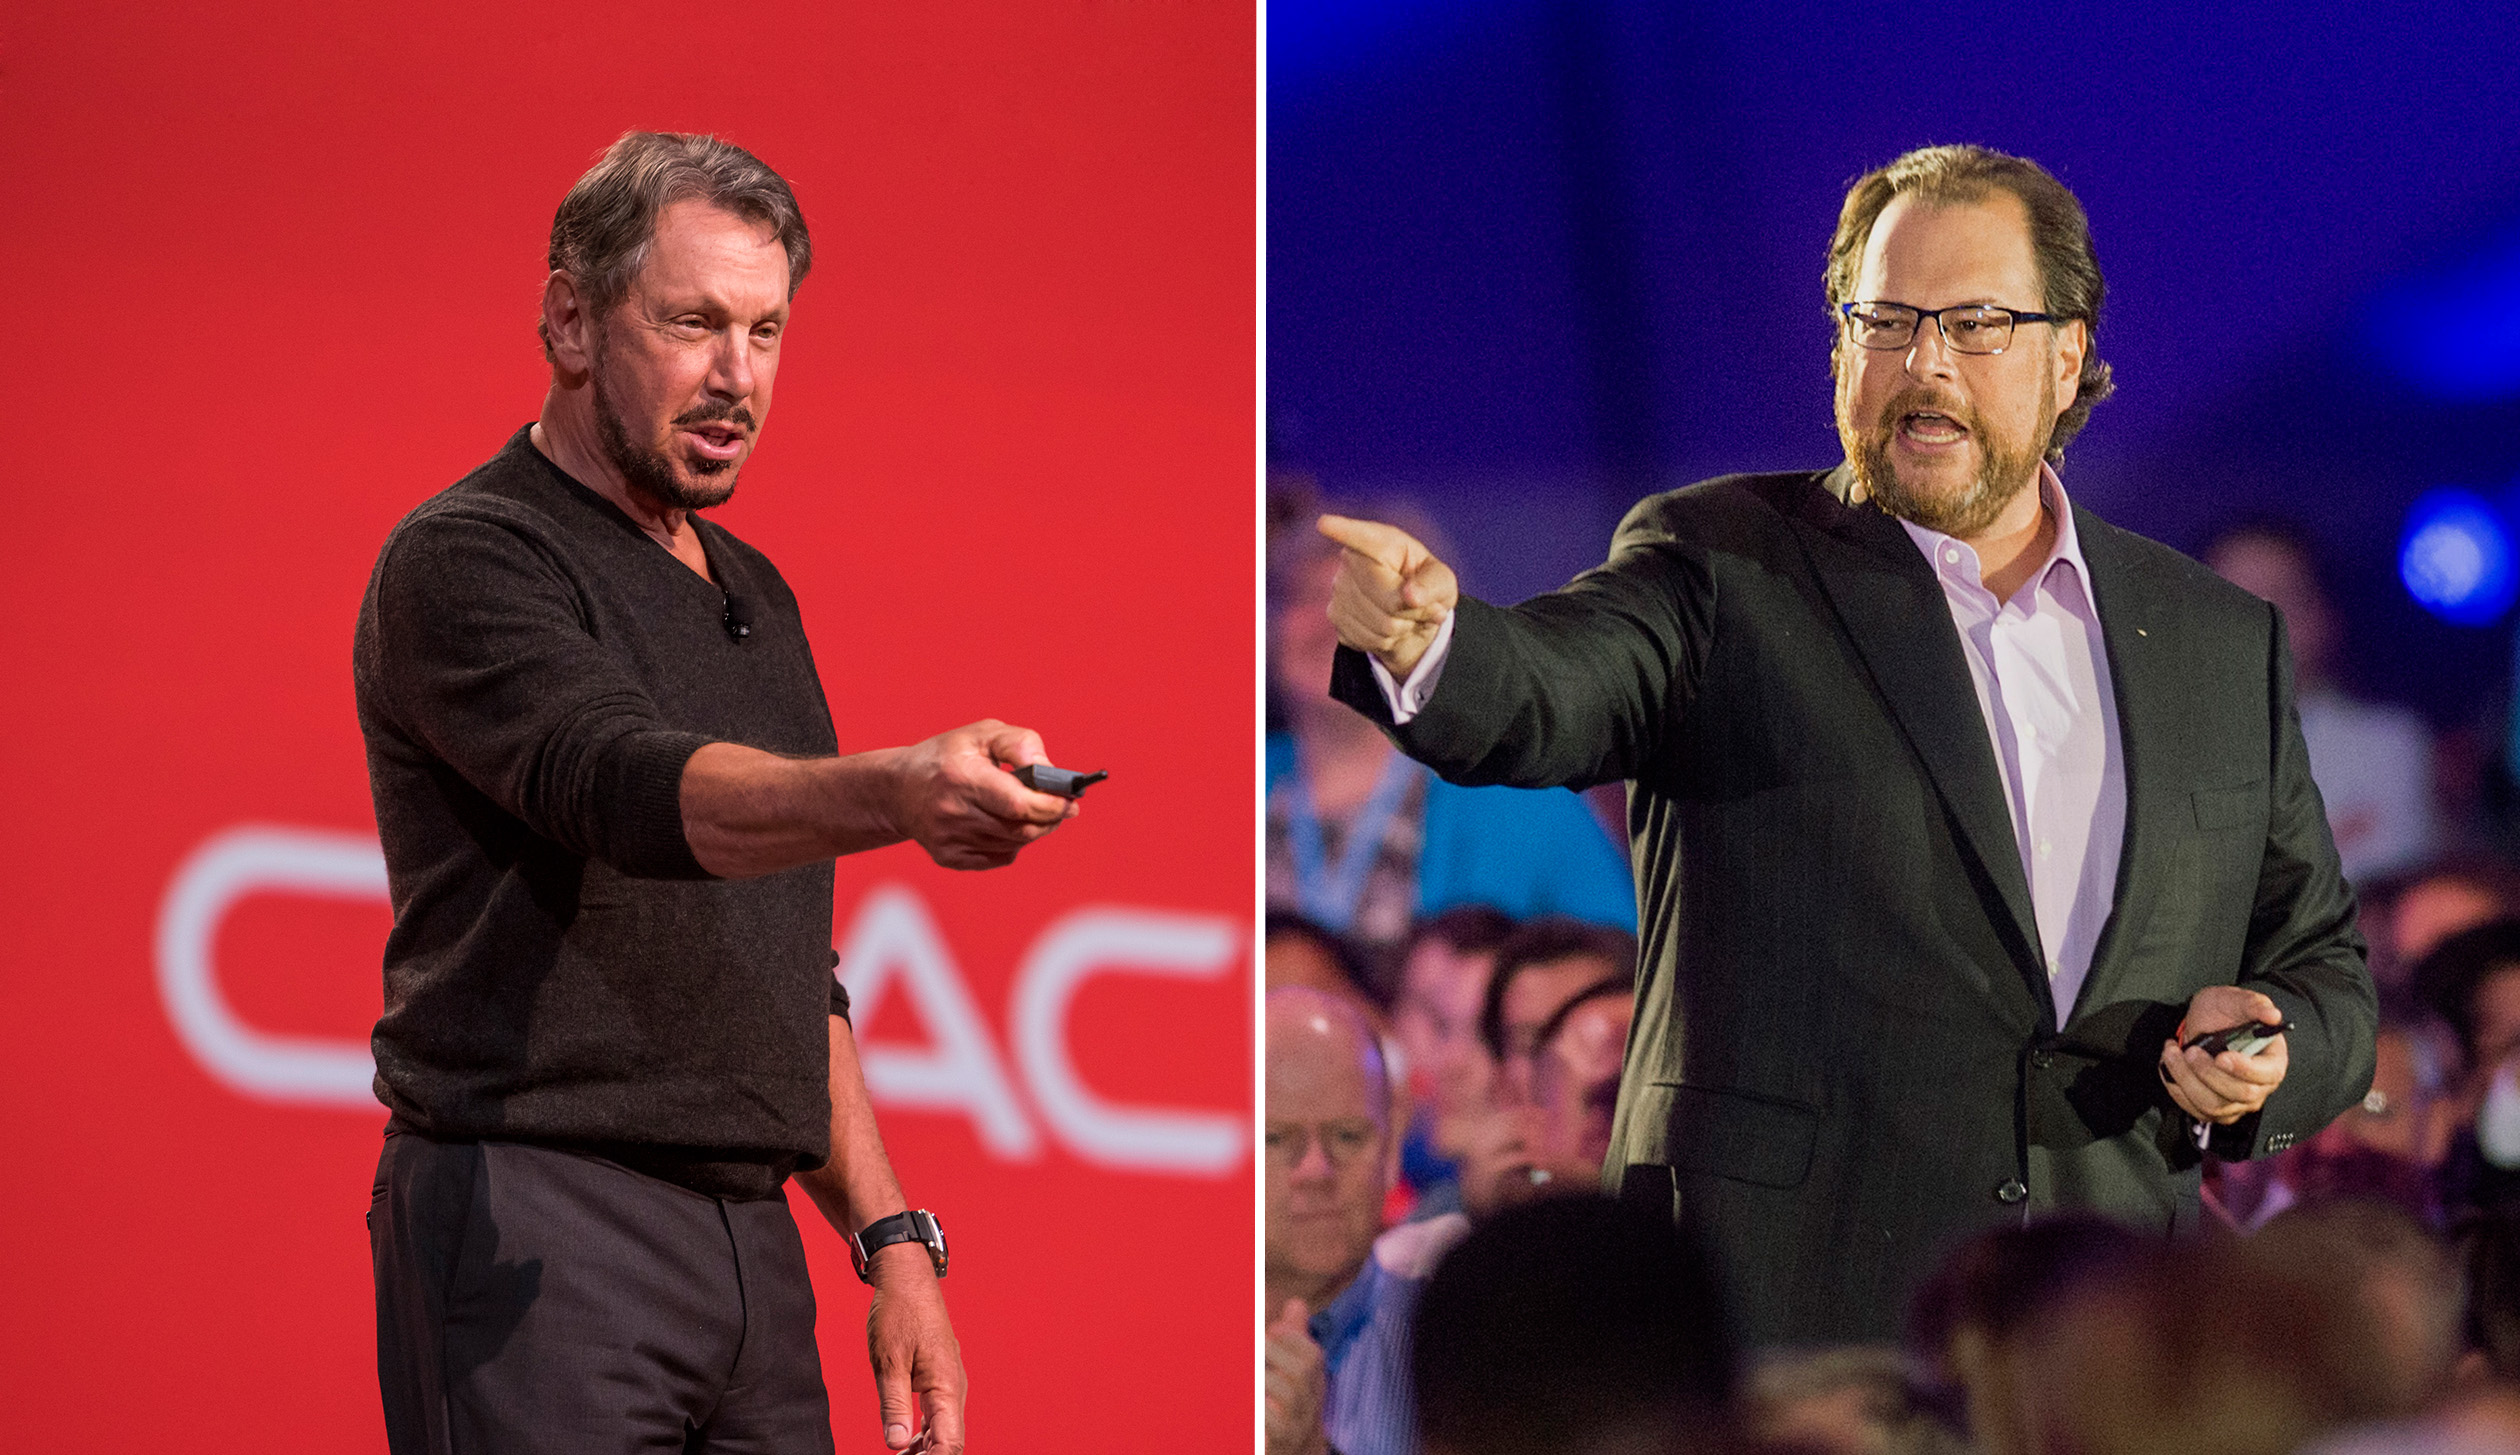 Larry Ellison, chairman of Oracle, and Marc Benioff, CEO of Salesforce